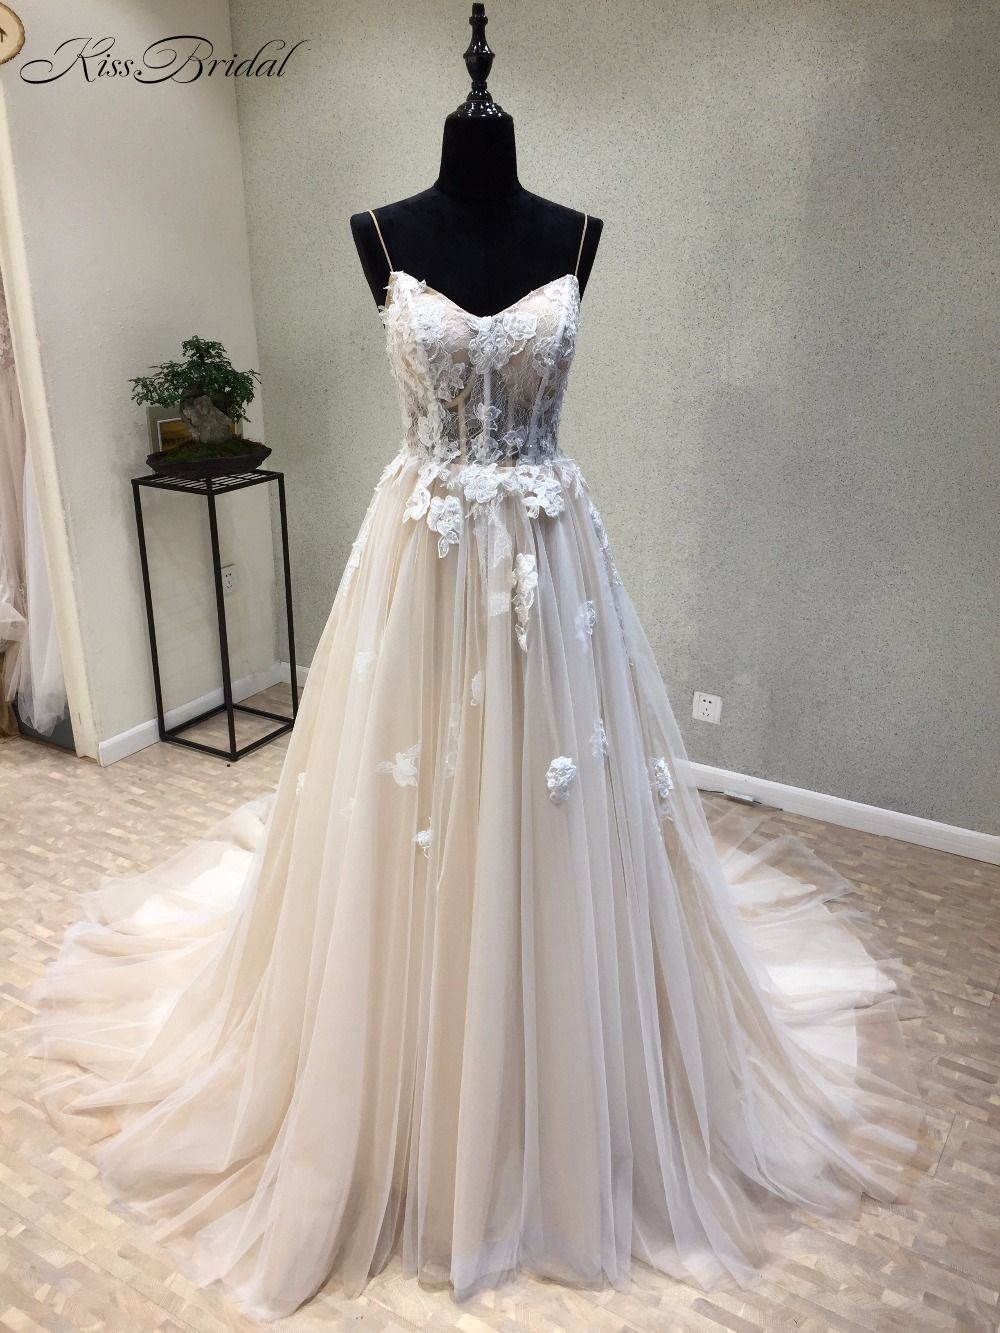 Amazing New Long Wedding Dress 2018 Sweetheart Spaghetti Strap Lace Up Back A-Line Appliques Tulle Wedding Gowns Vestido longo